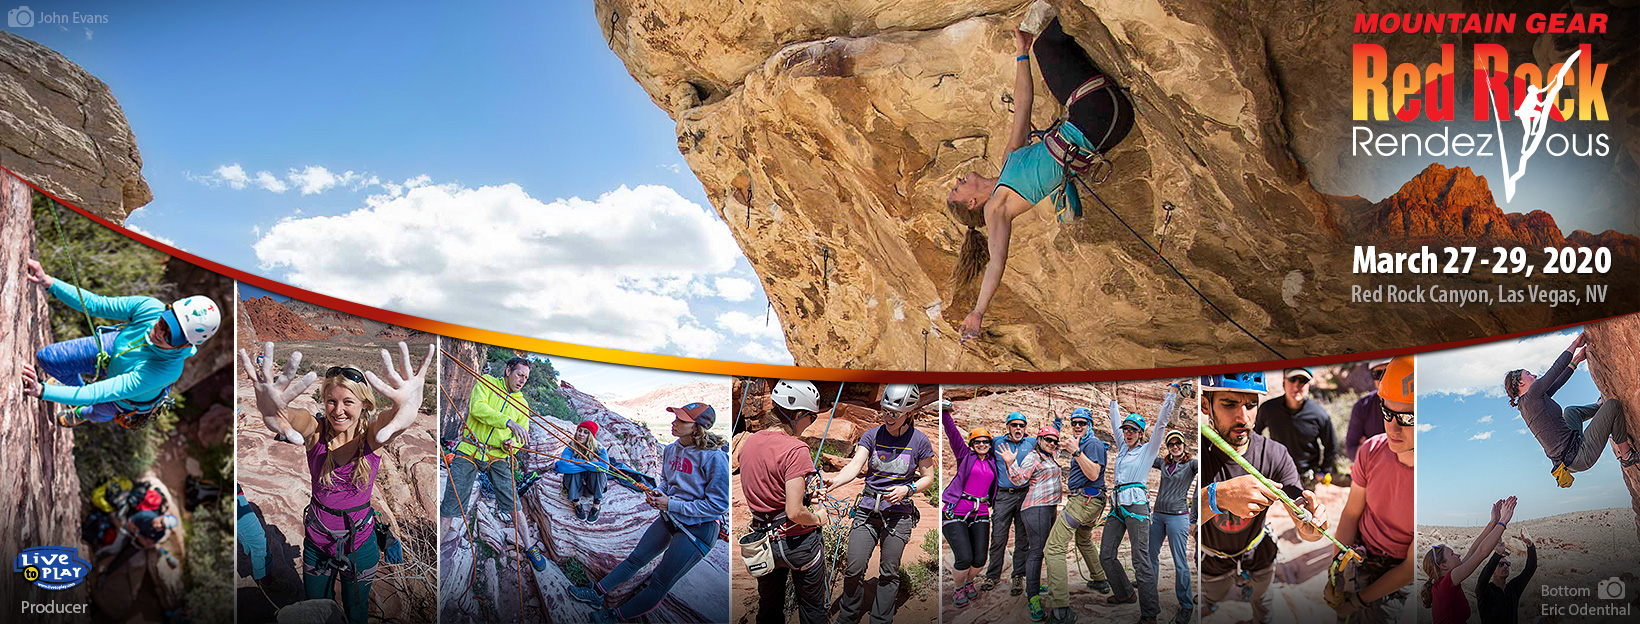 Red Rock Rendezvous 2018